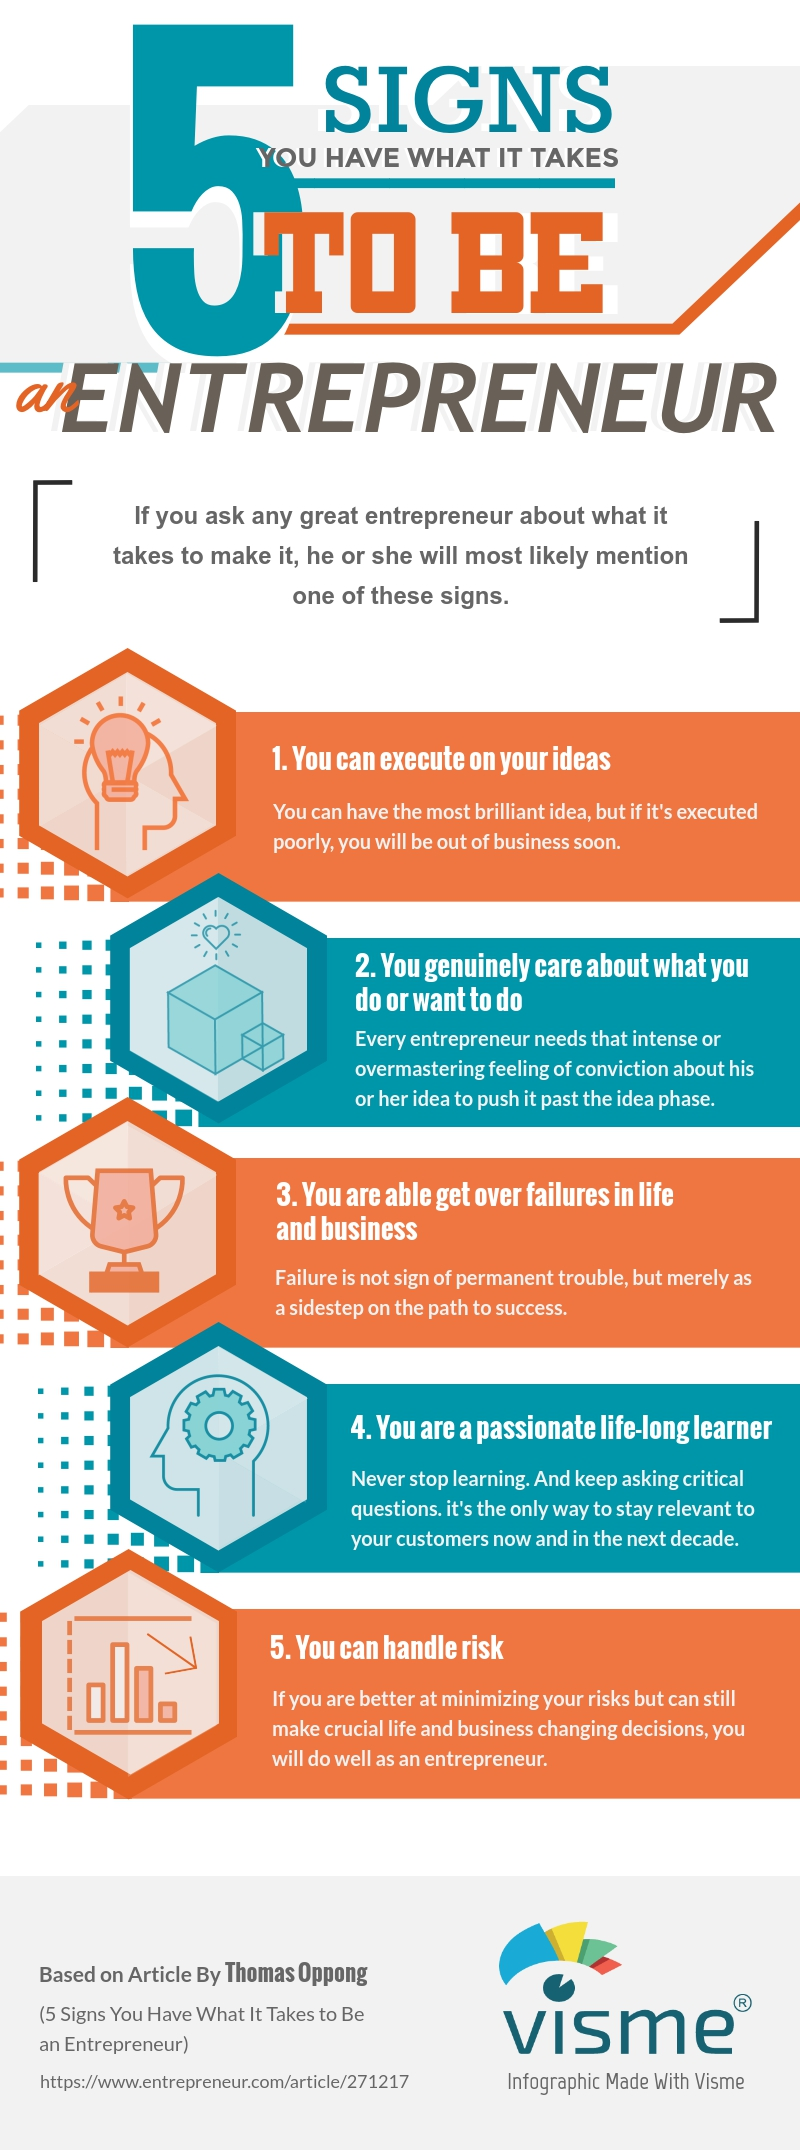 5 Signs You Have What It Takes to be an Entrepreneur